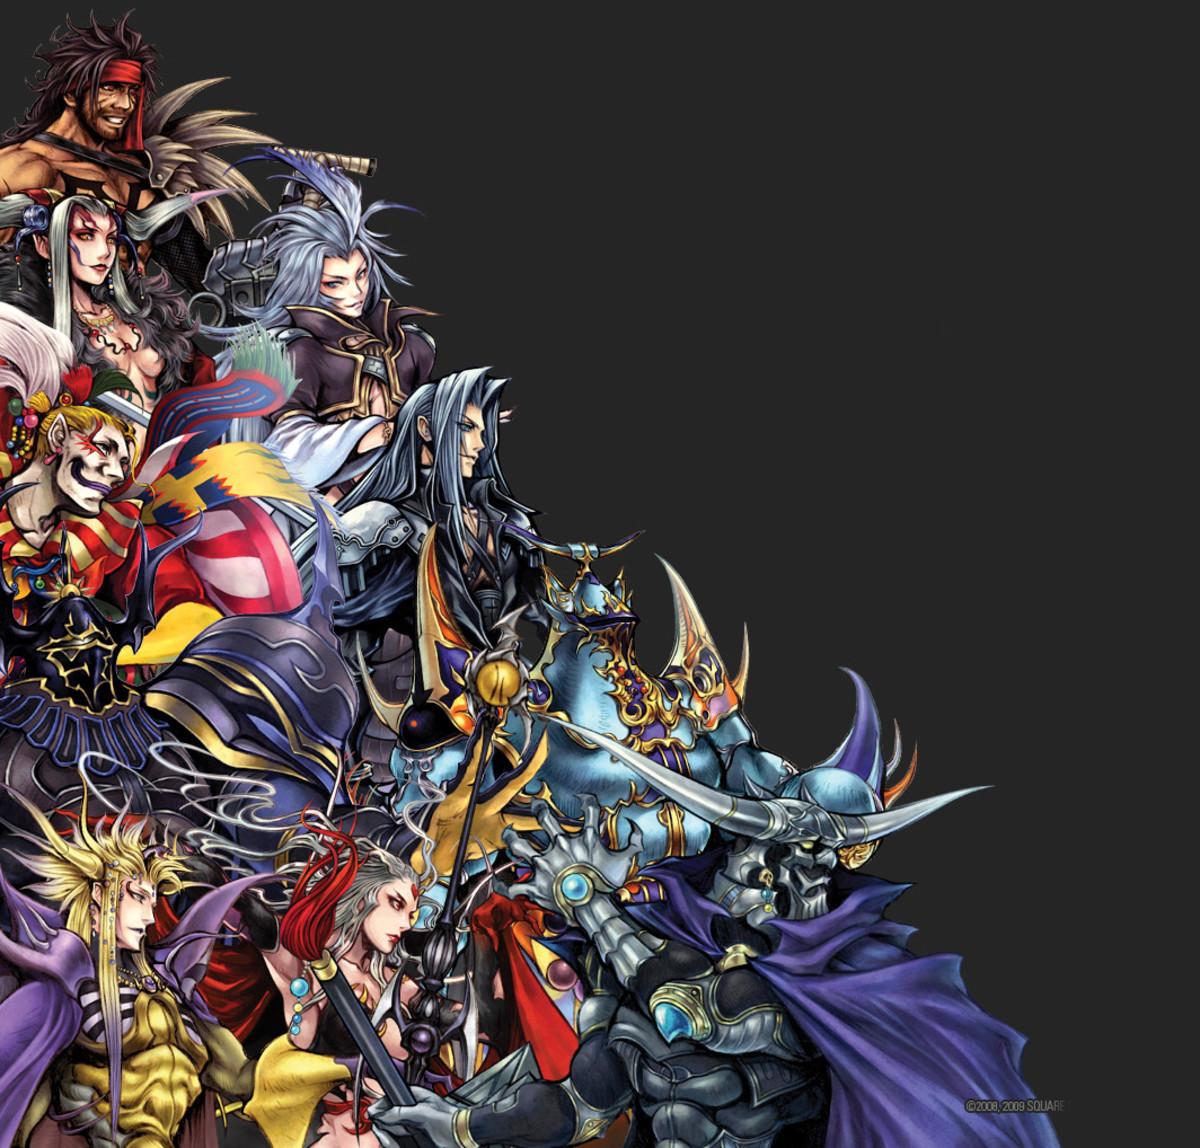 Final Fantasy: Which Villain Are You?